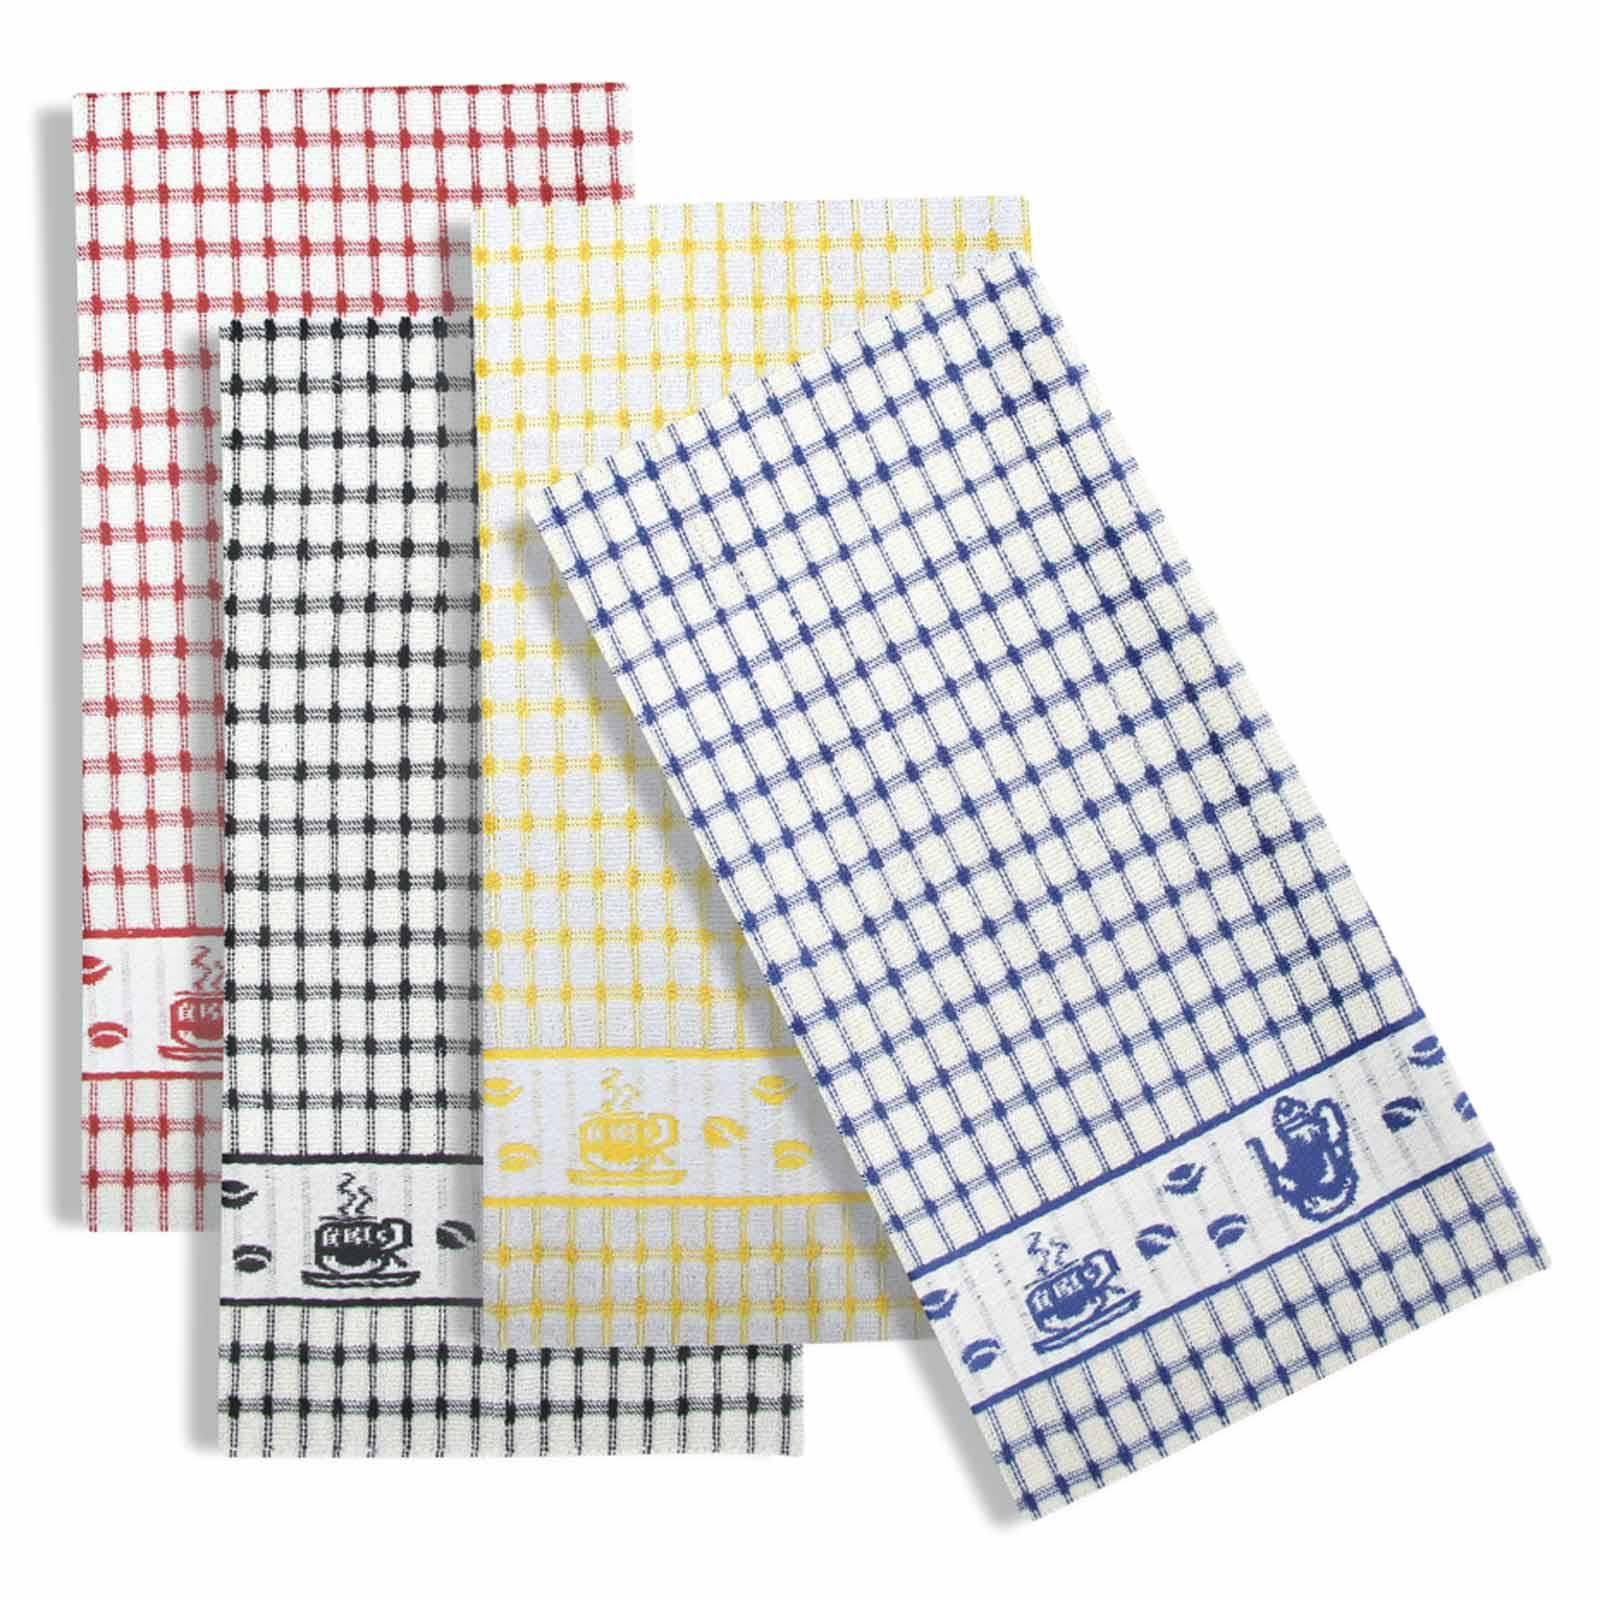 Packs-of-2-4-6-12-Tea-Towels-100-Cotton-Terry-Kitchen-Dish-Drying-Towel-Sets thumbnail 78